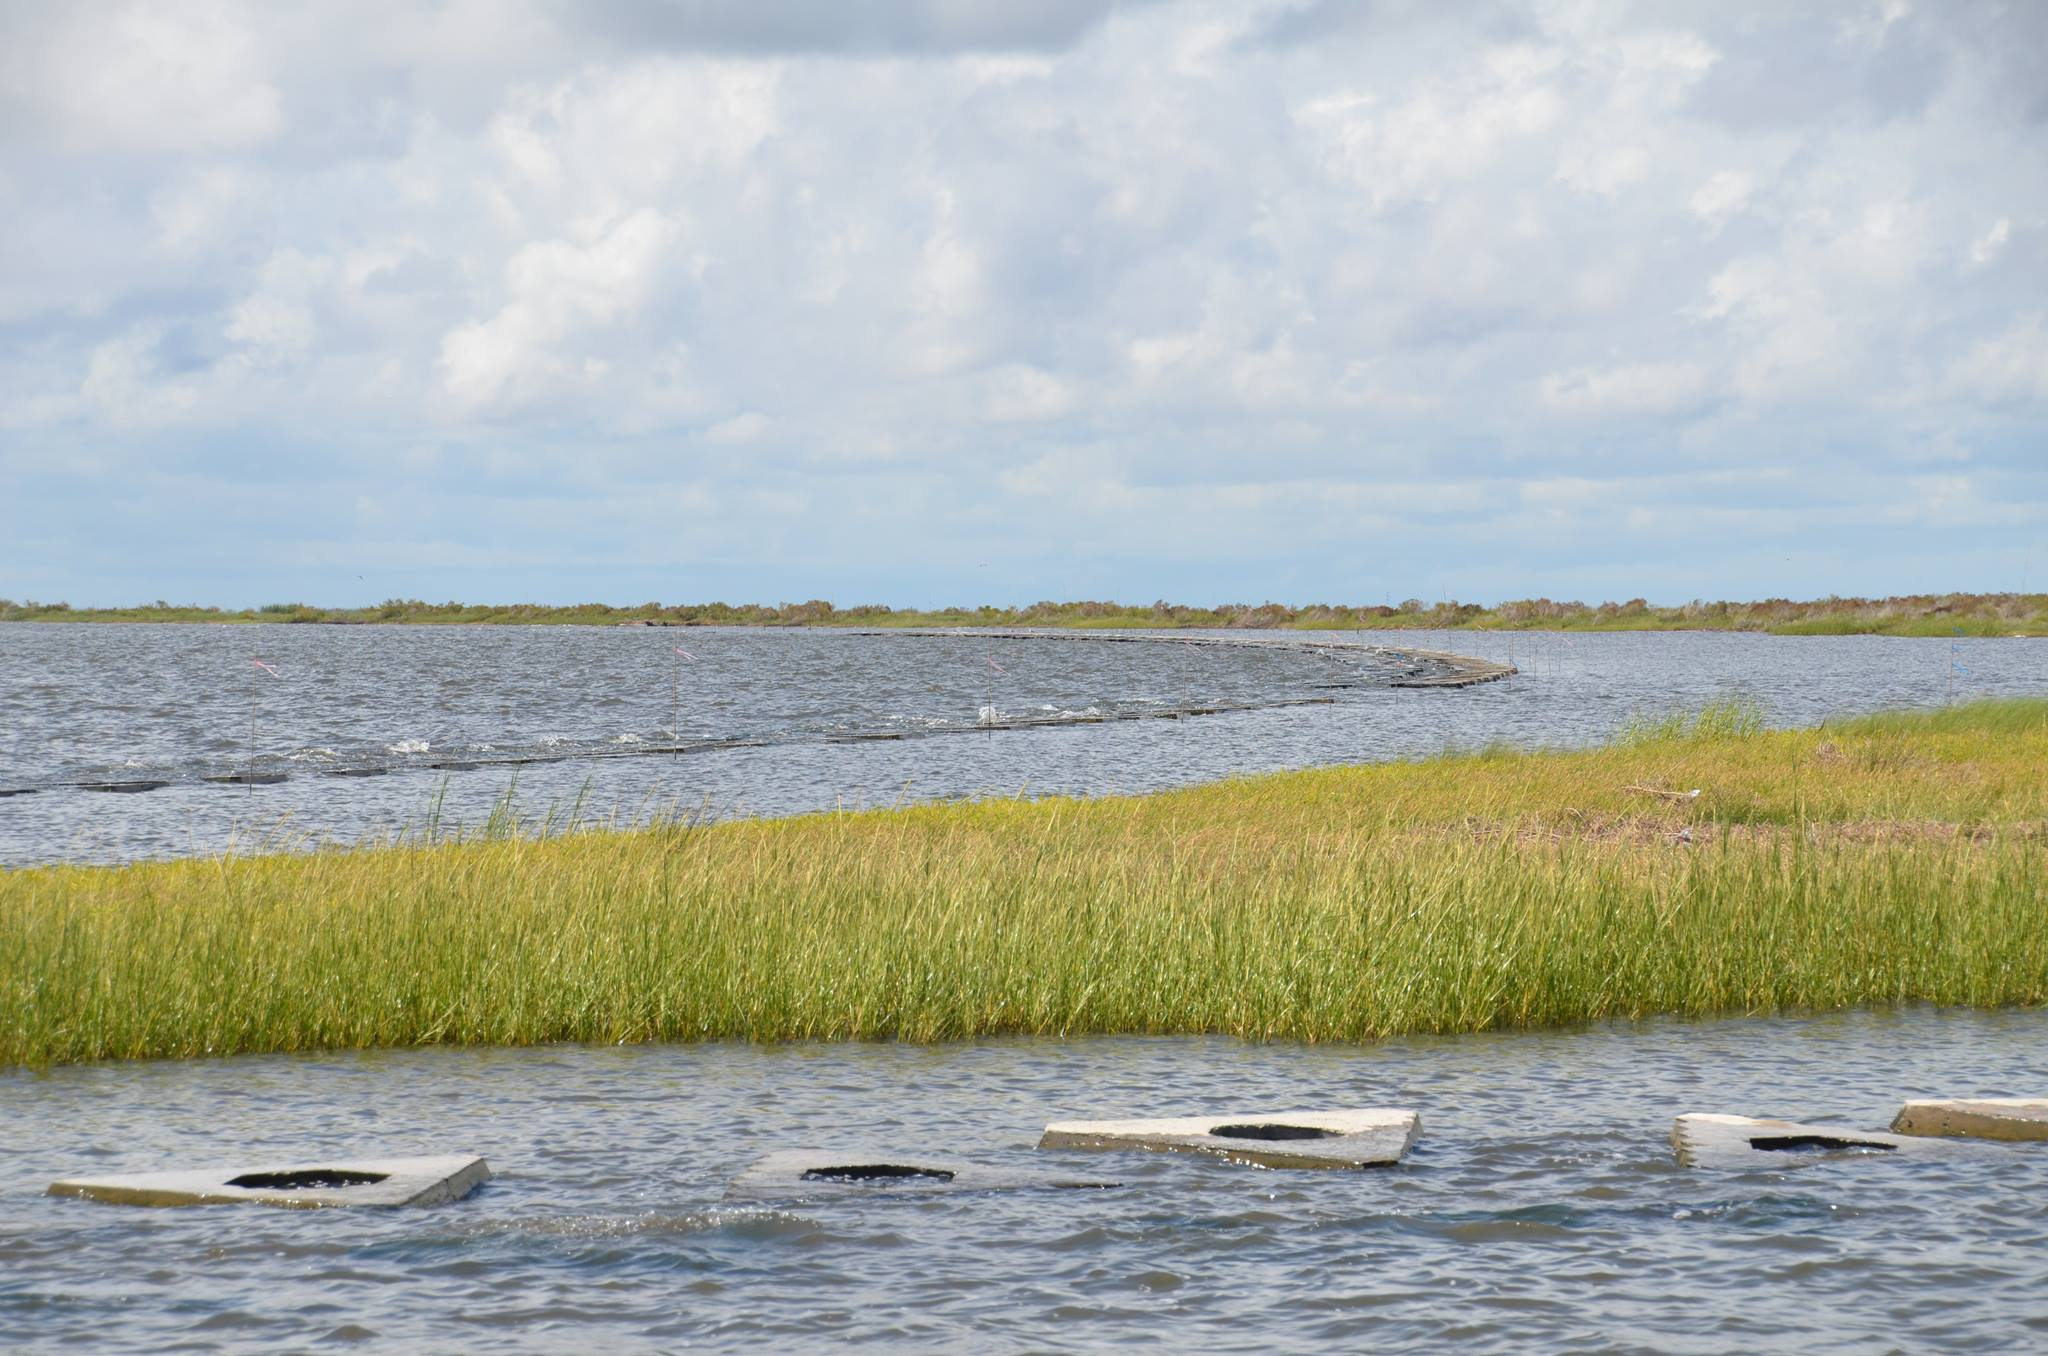 Marsh and water habitat in Louisiana. Credit: Coastal Protection and Restoration Authority.